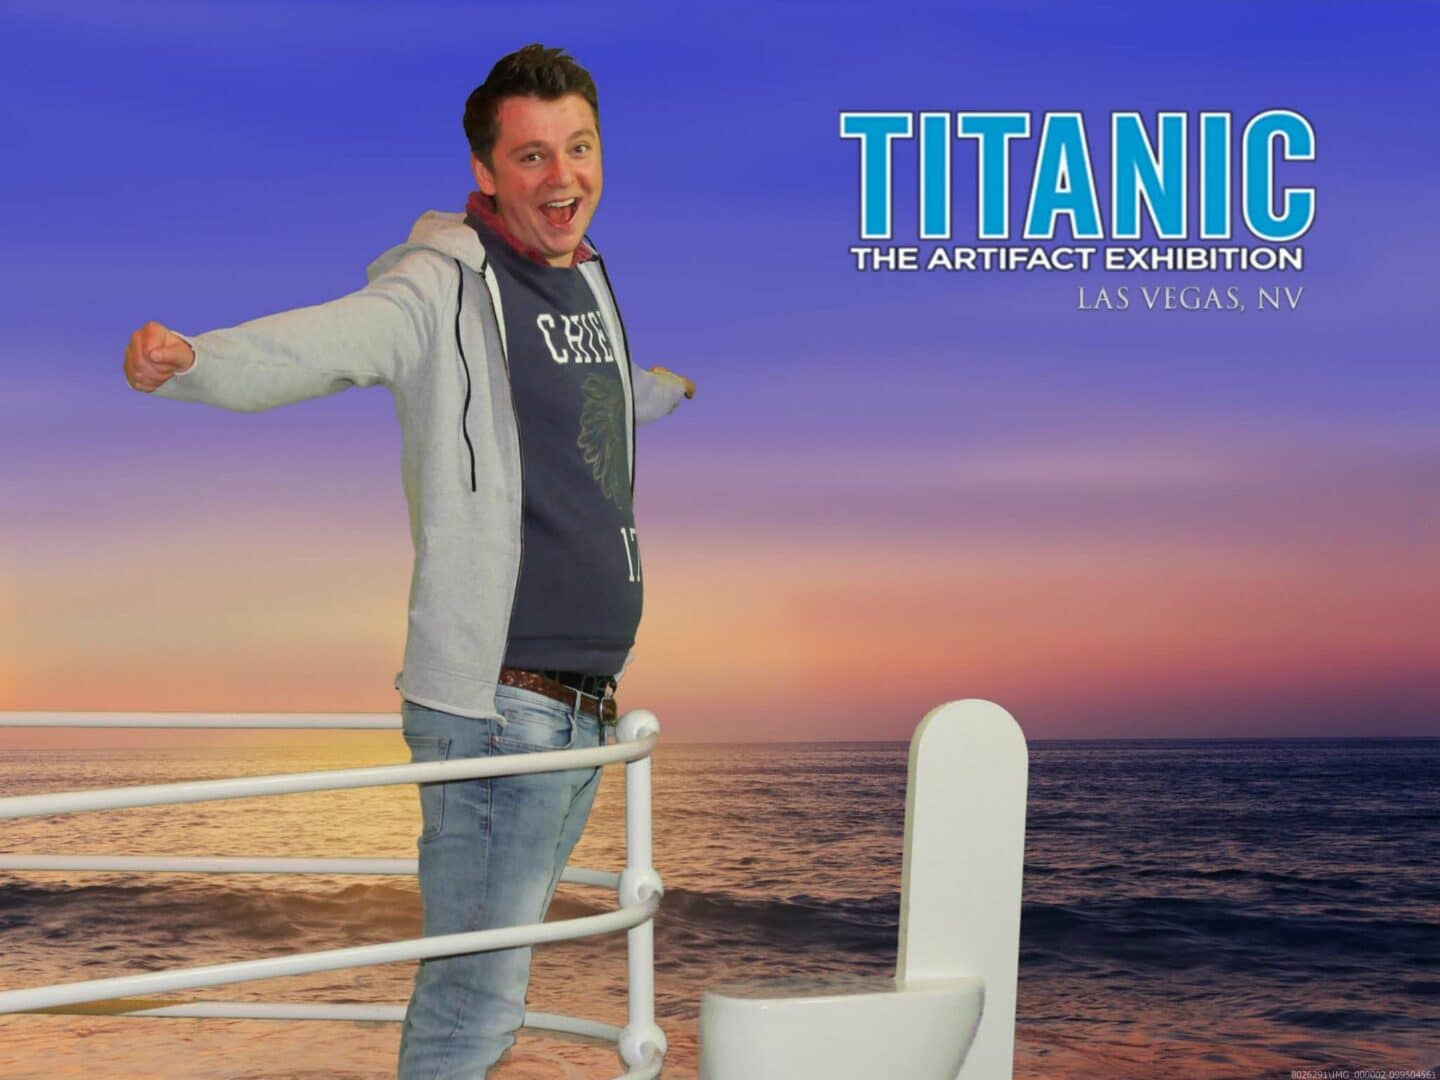 Me replicating a famous movie scene at the Titanic Artifact Exhibition in the Luxor Hotel.